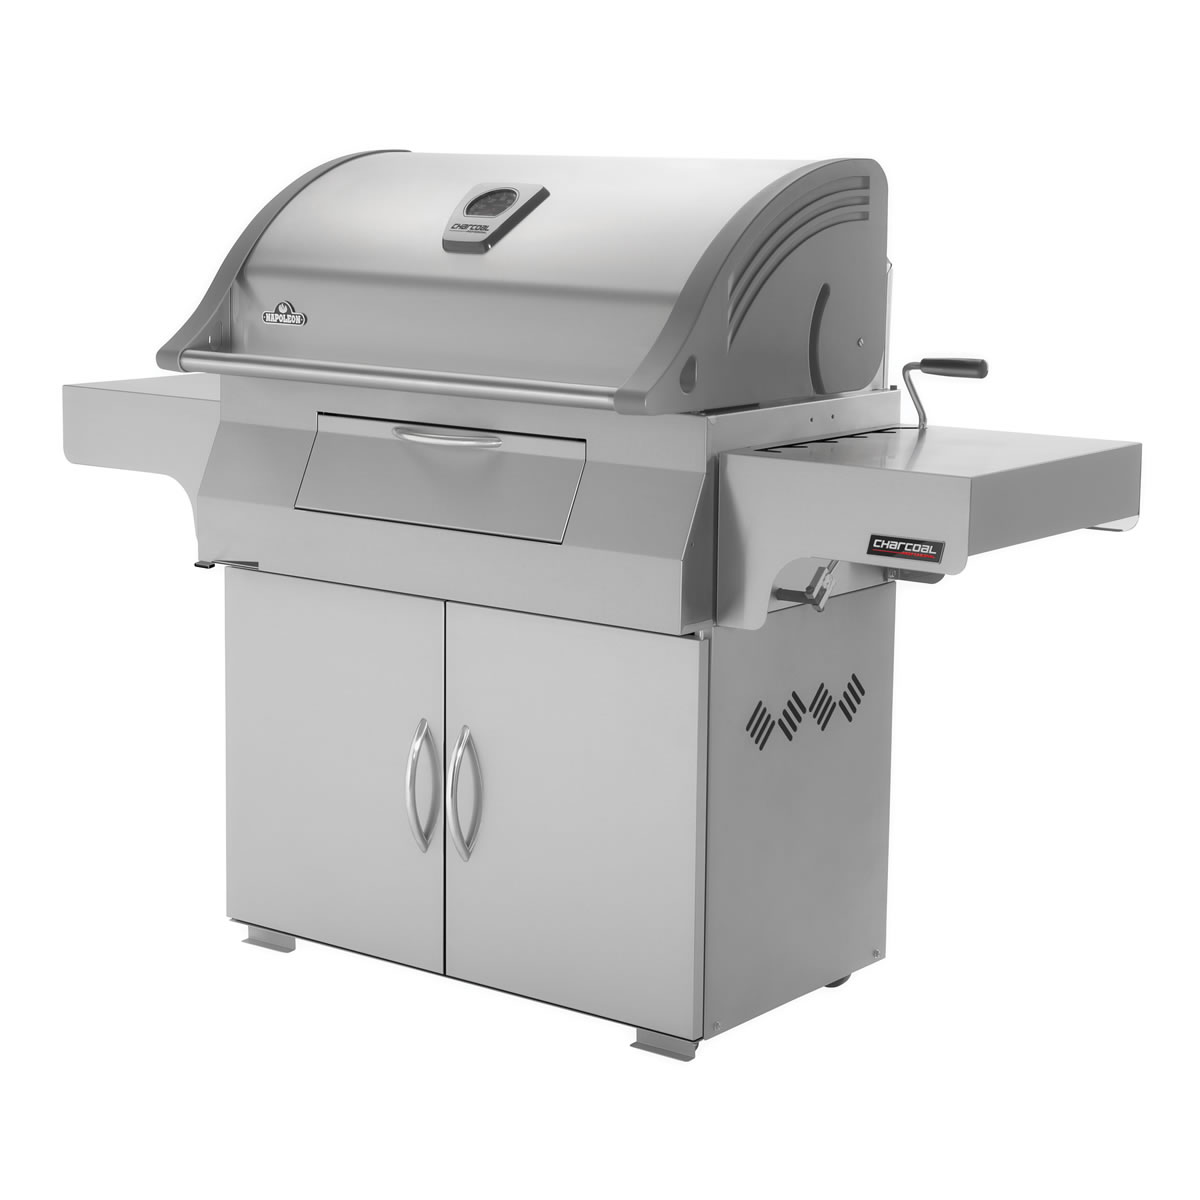 Napoleon PRO605CSS Charcoal Professional PRO605 Charcoal BBQ